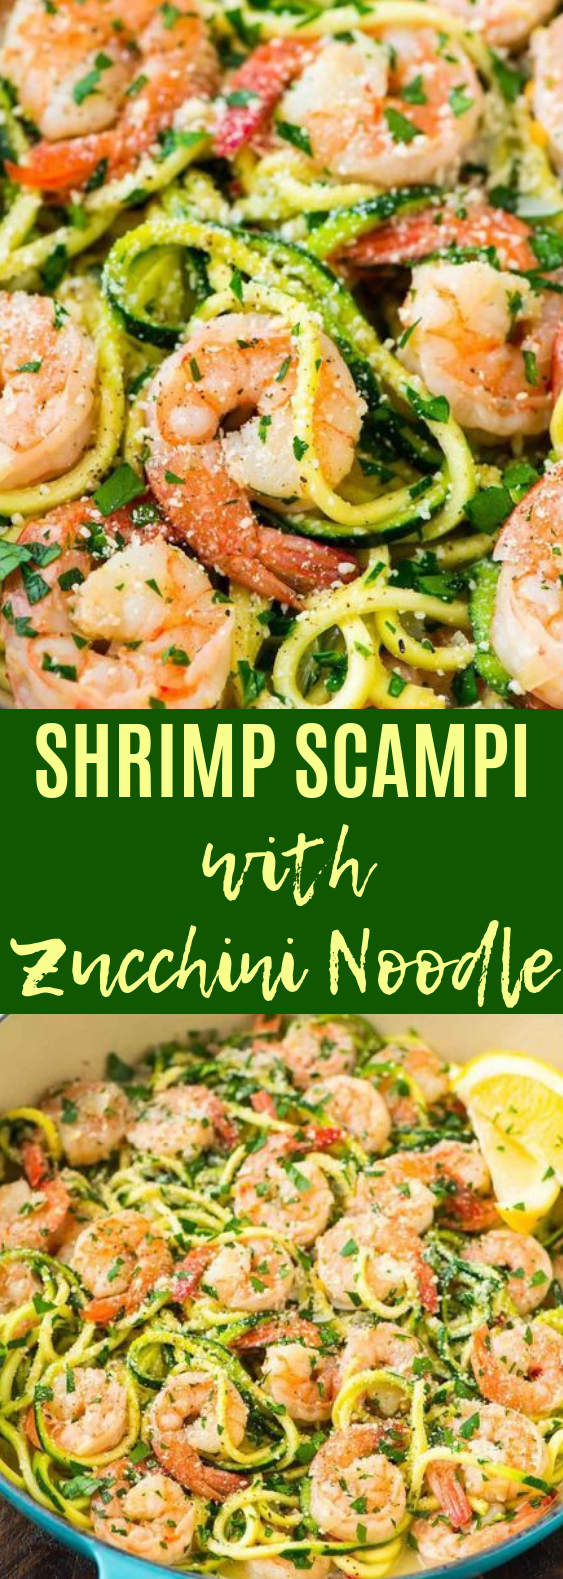 Healthy Shrimp Scampi with Zucchini Noodles #lowcarb #glutenfree